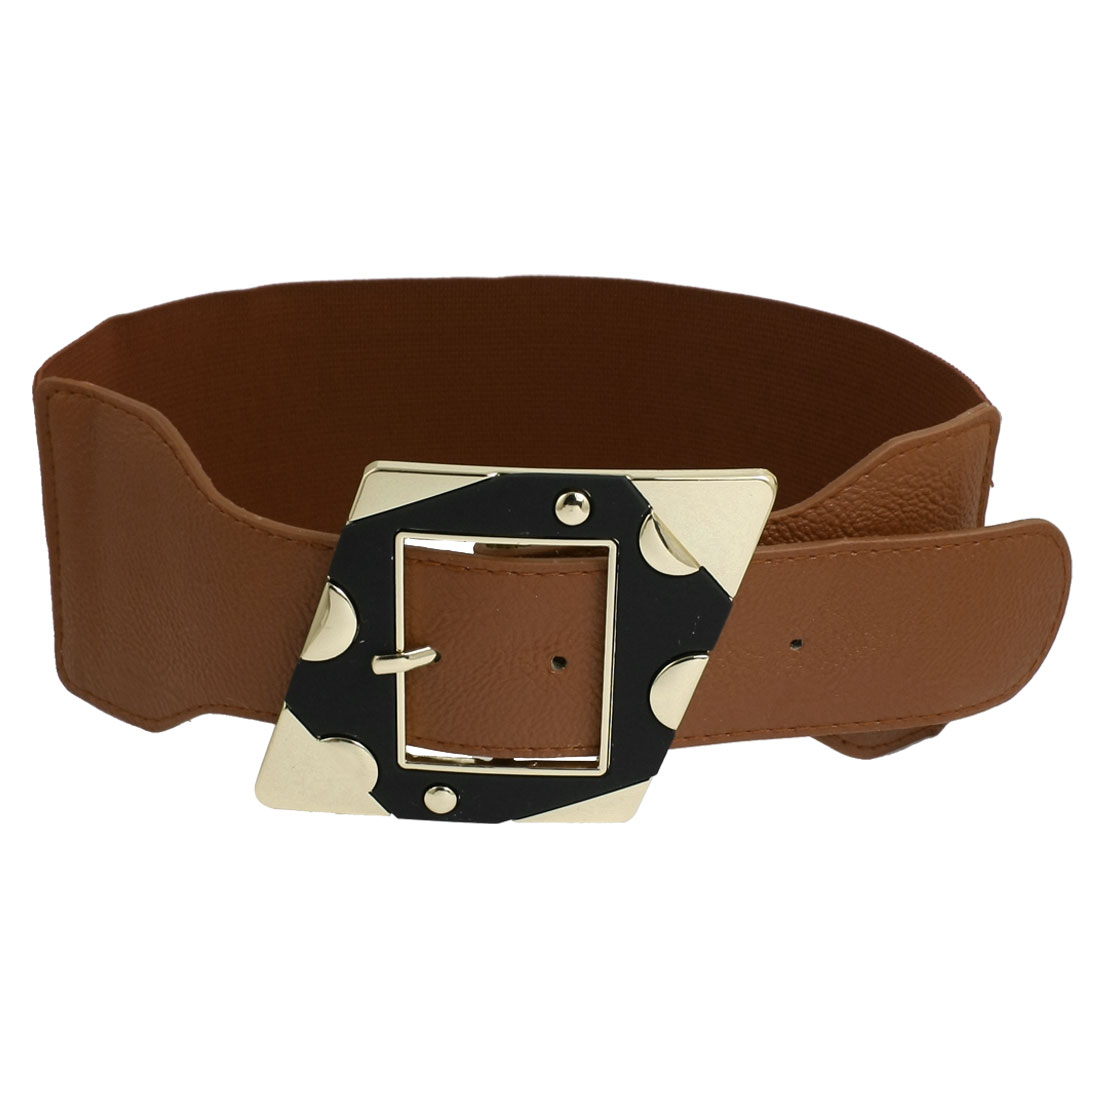 Ladies 7.5cm Wide Single Pin Buckle Stretchy Cinch Belts Brown